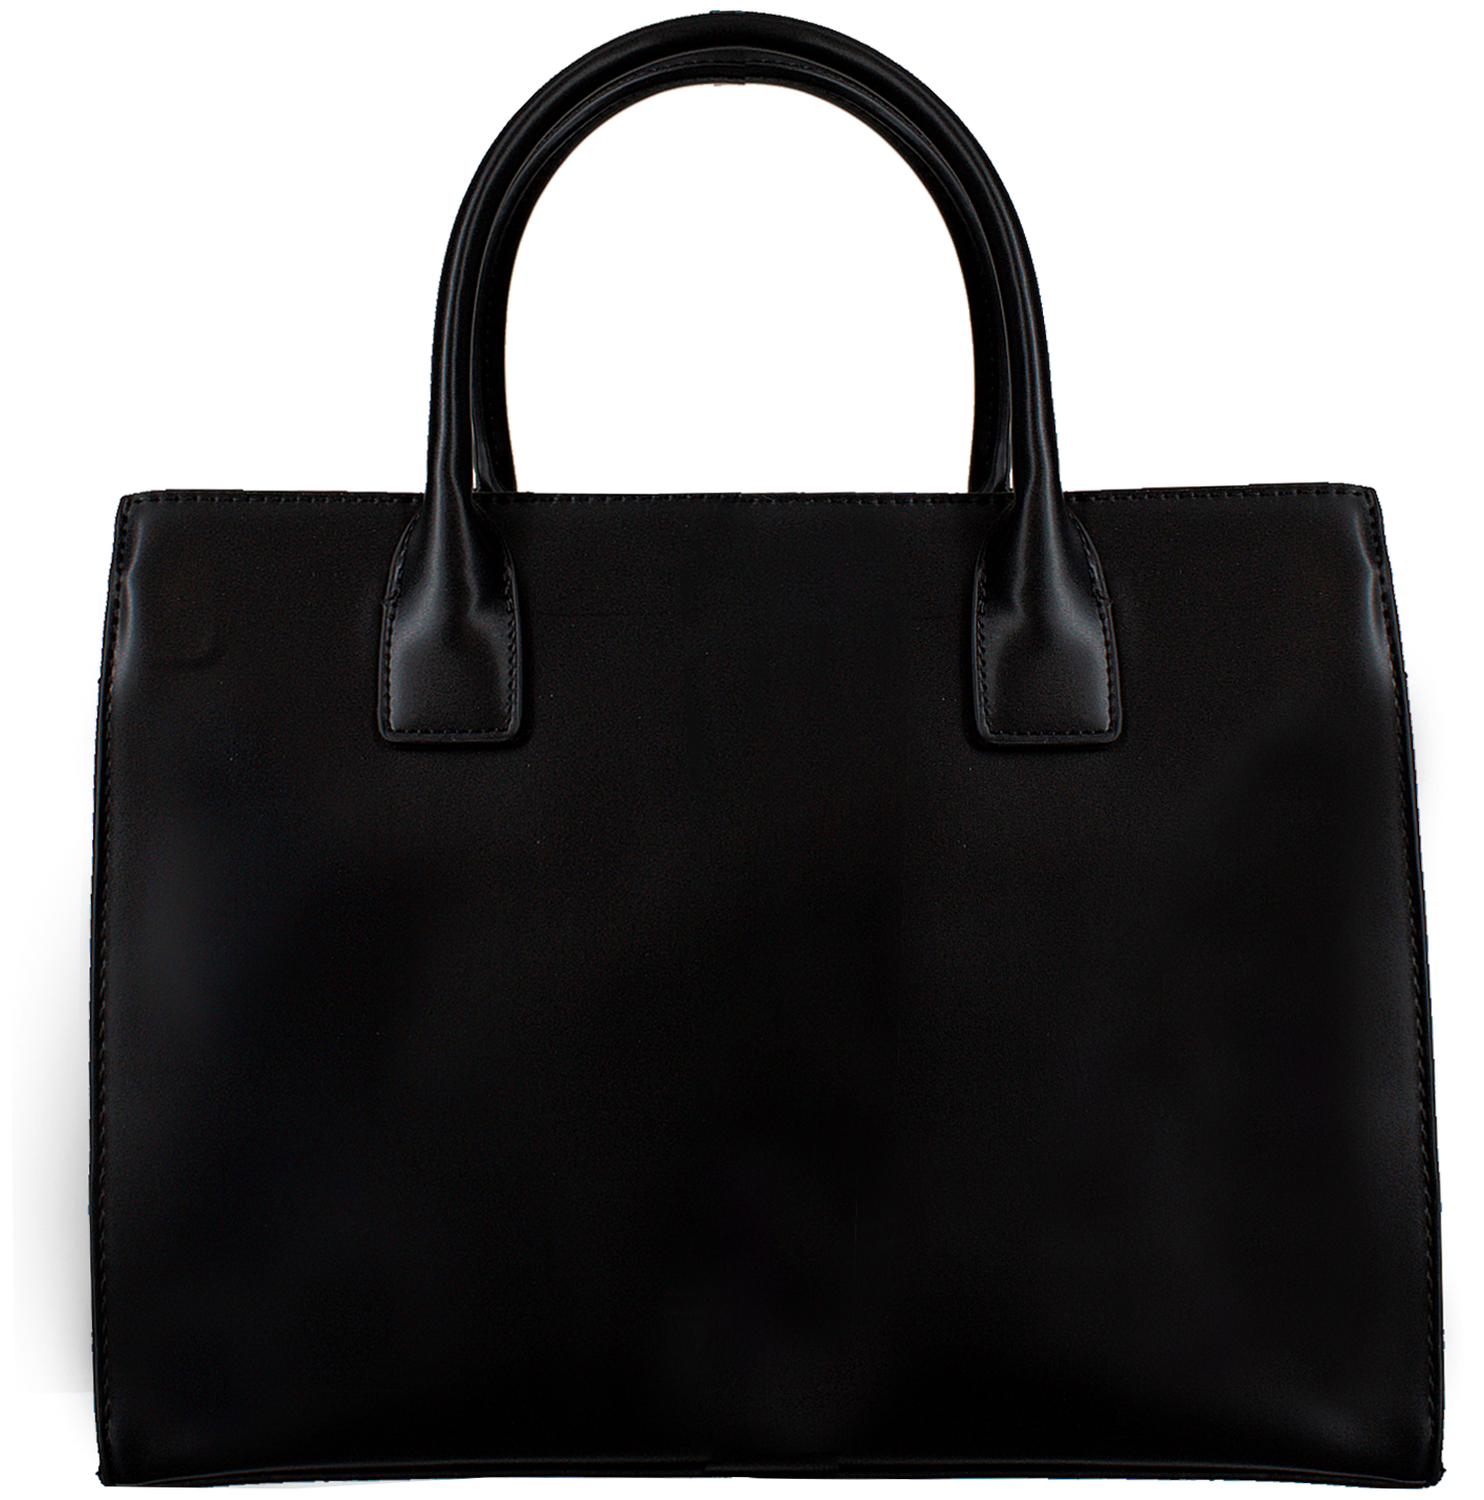 fe894f99357 Black VALENTINO HANDBAGS Shoulder bag BLAST TOTE - Omoda.com